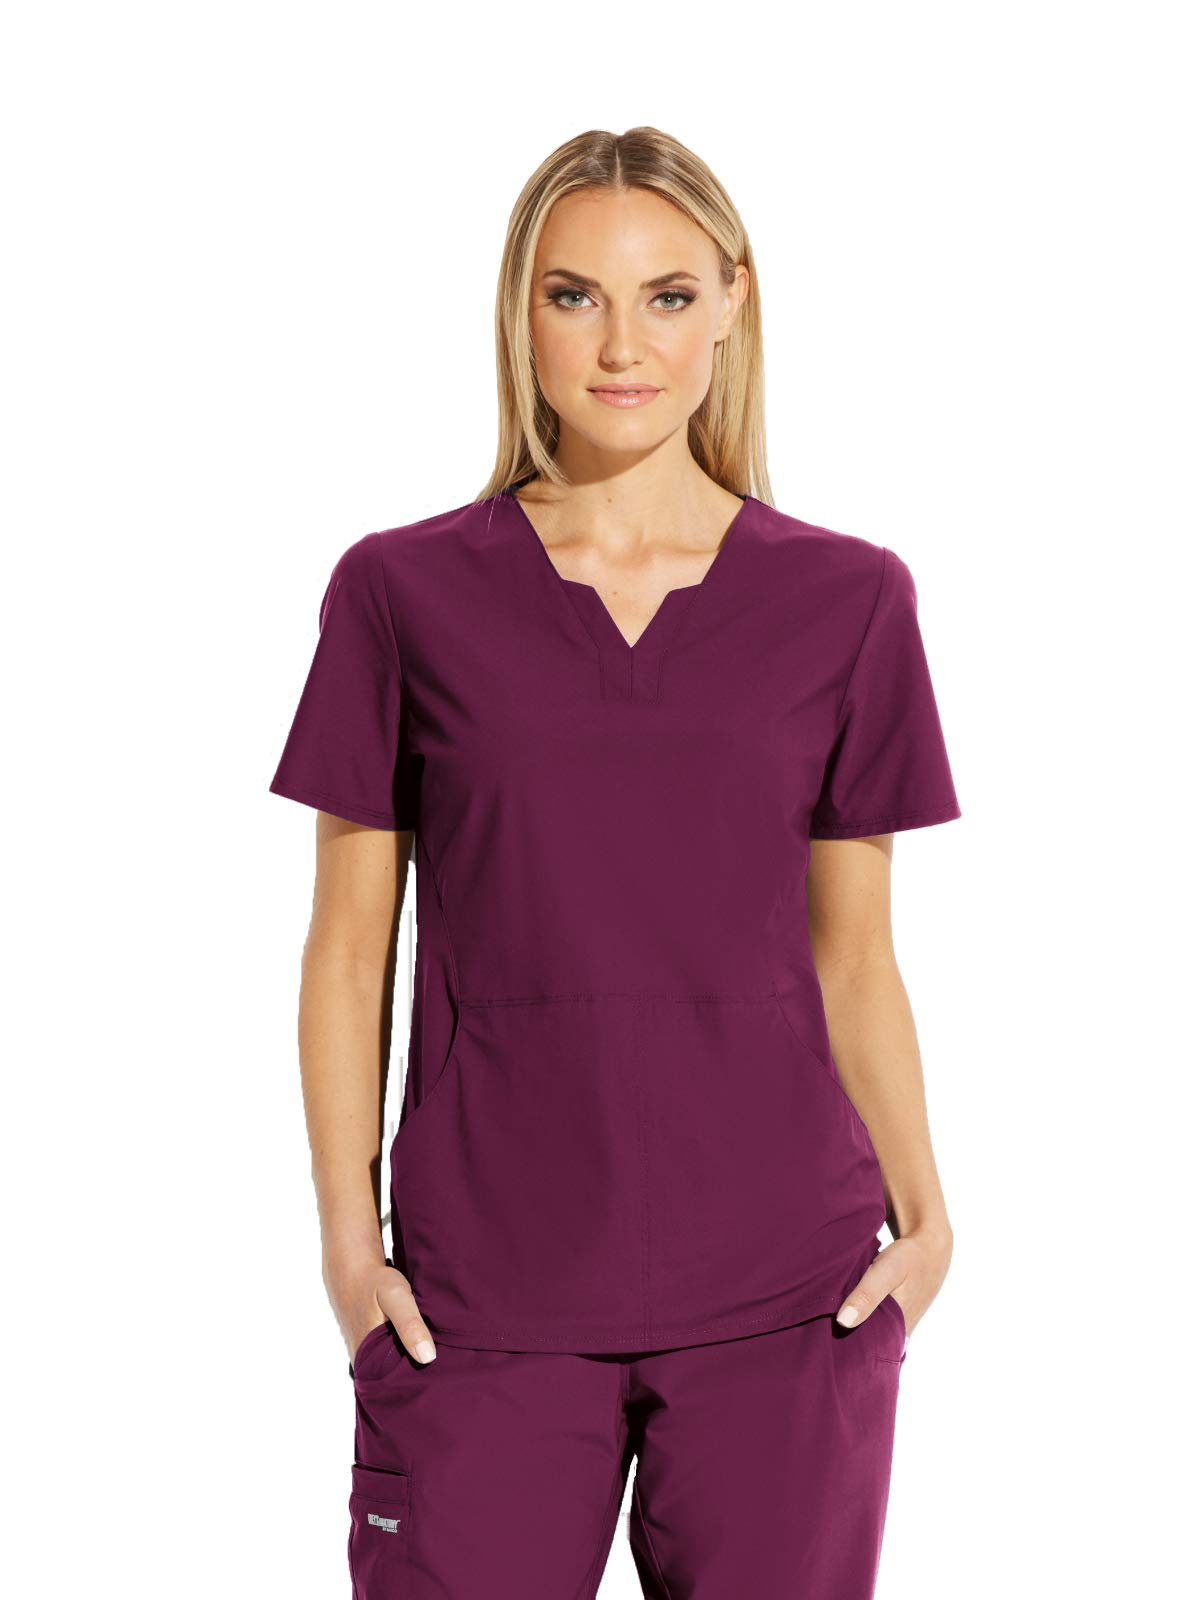 Grey's Anatomy Edge Axis Top for Women – Wrinkle Recovery Medical Scrub Top